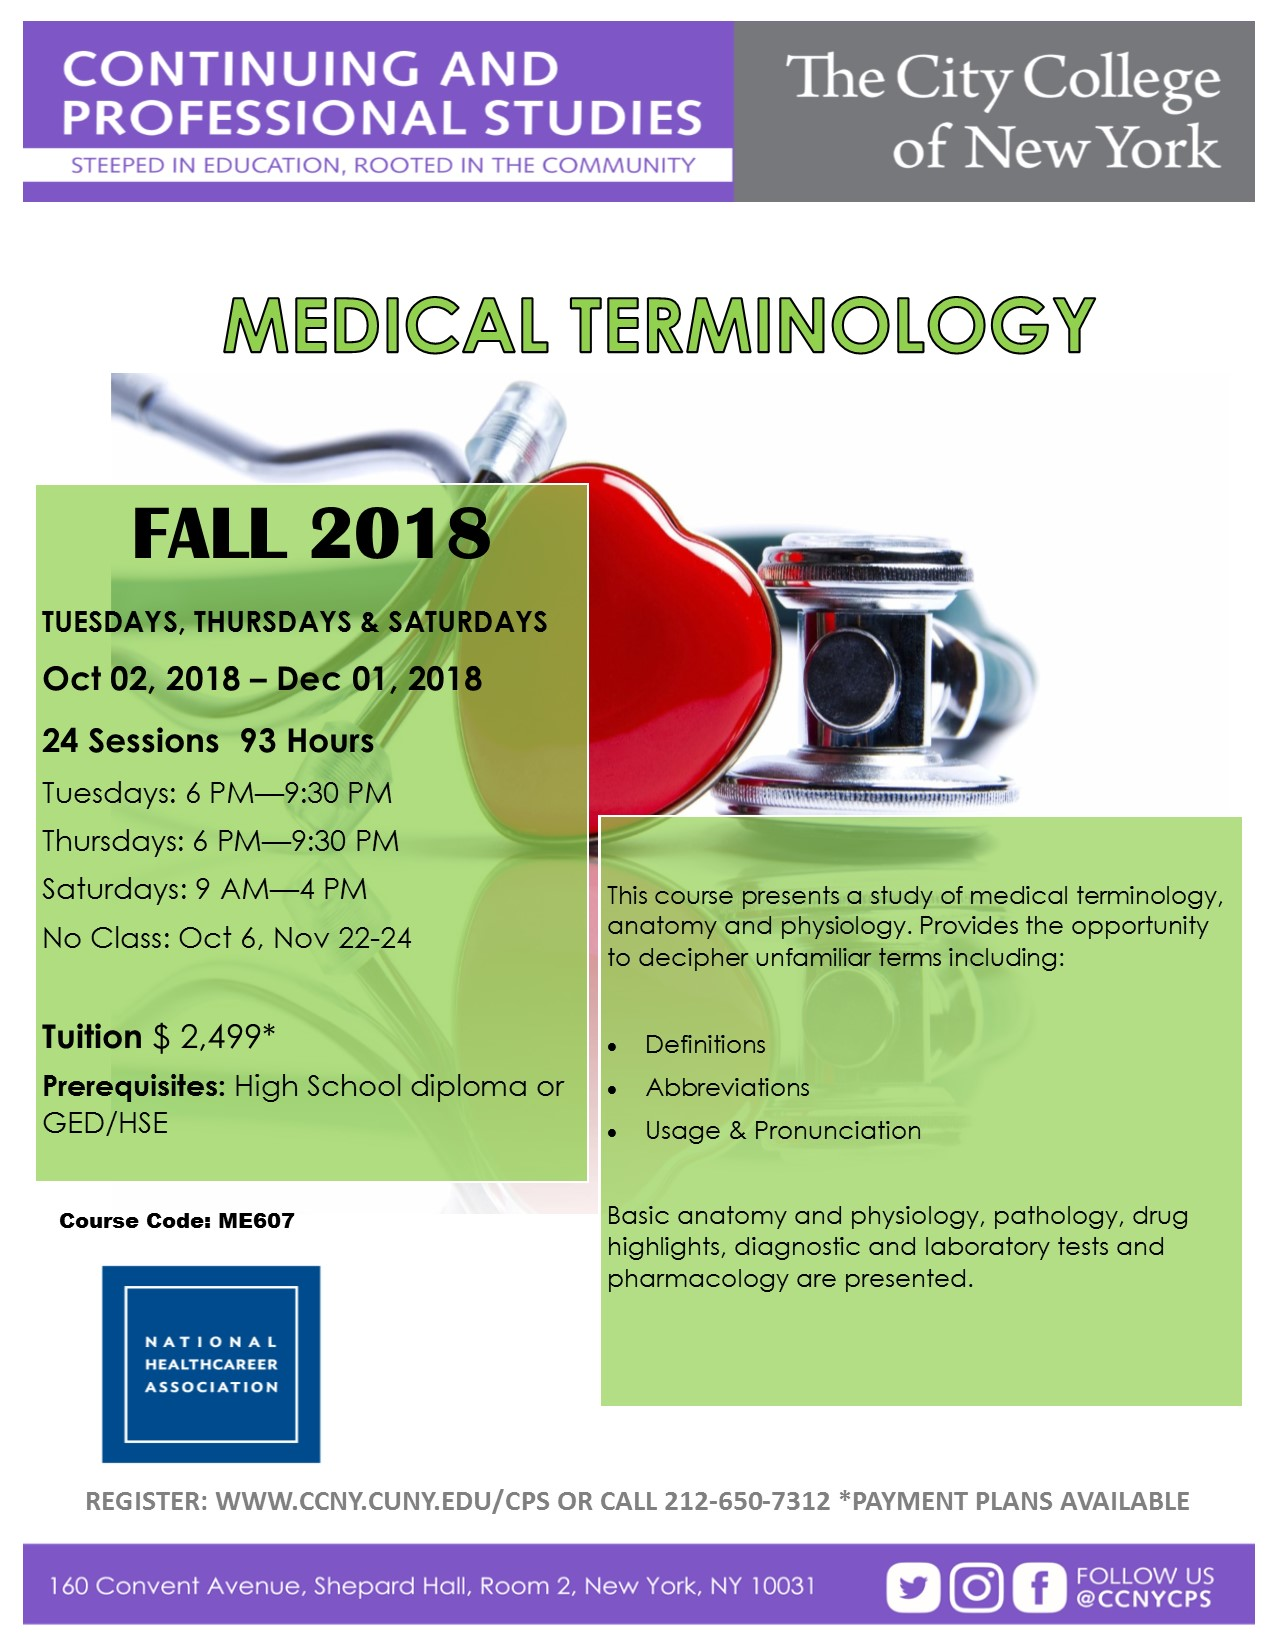 Medical Terminology | The City College of New York